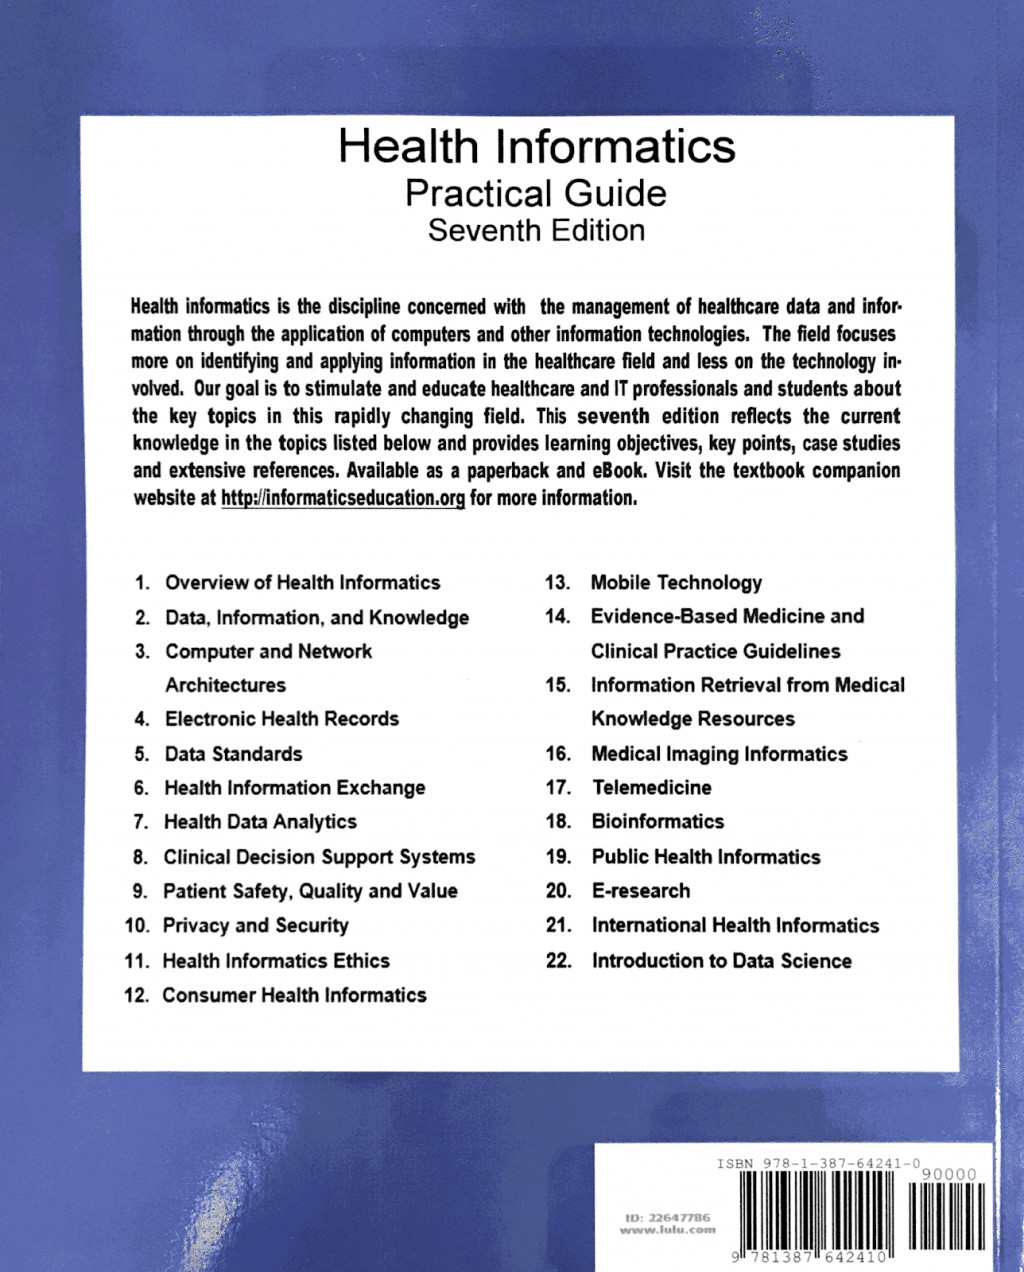 011 Back Health Informatics Research Paper Stunning Topics Large